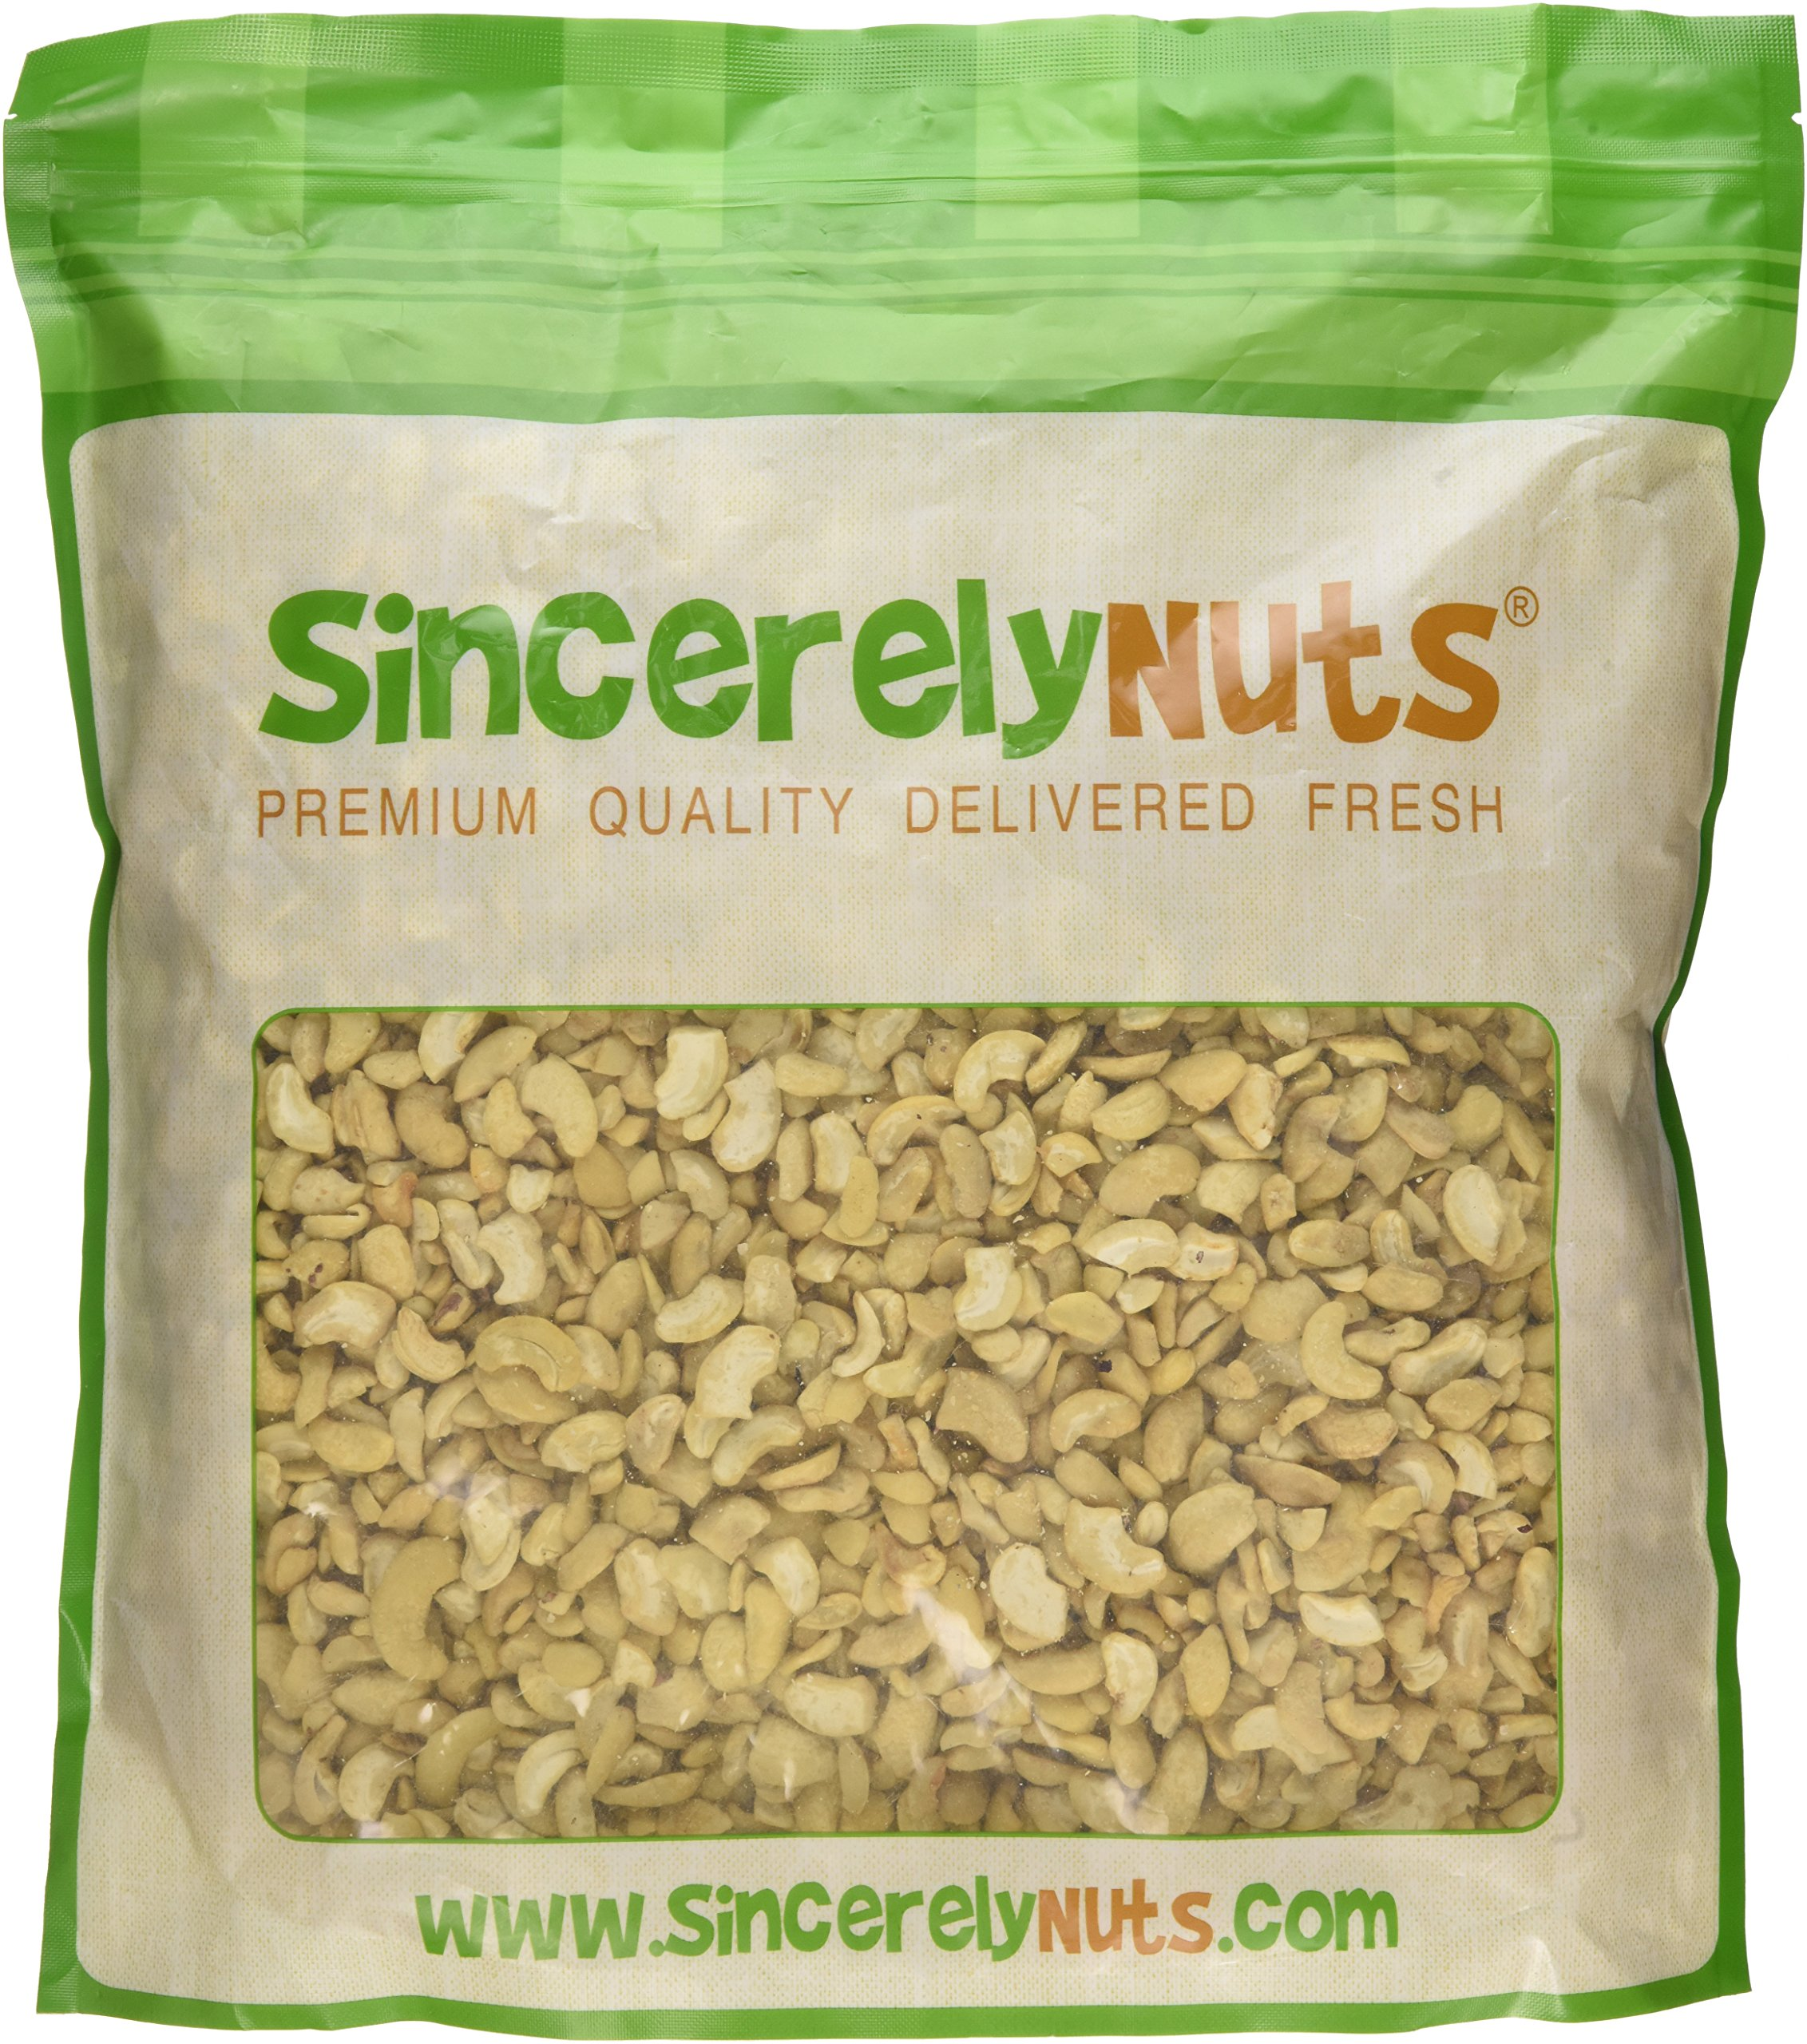 Sincerely Nuts Raw Cashew Pieces Unsalted- Five Lb. Bag - Sensationally Scrumptious - Total Freshness - Filled with Healthy Nutrients- Kosher